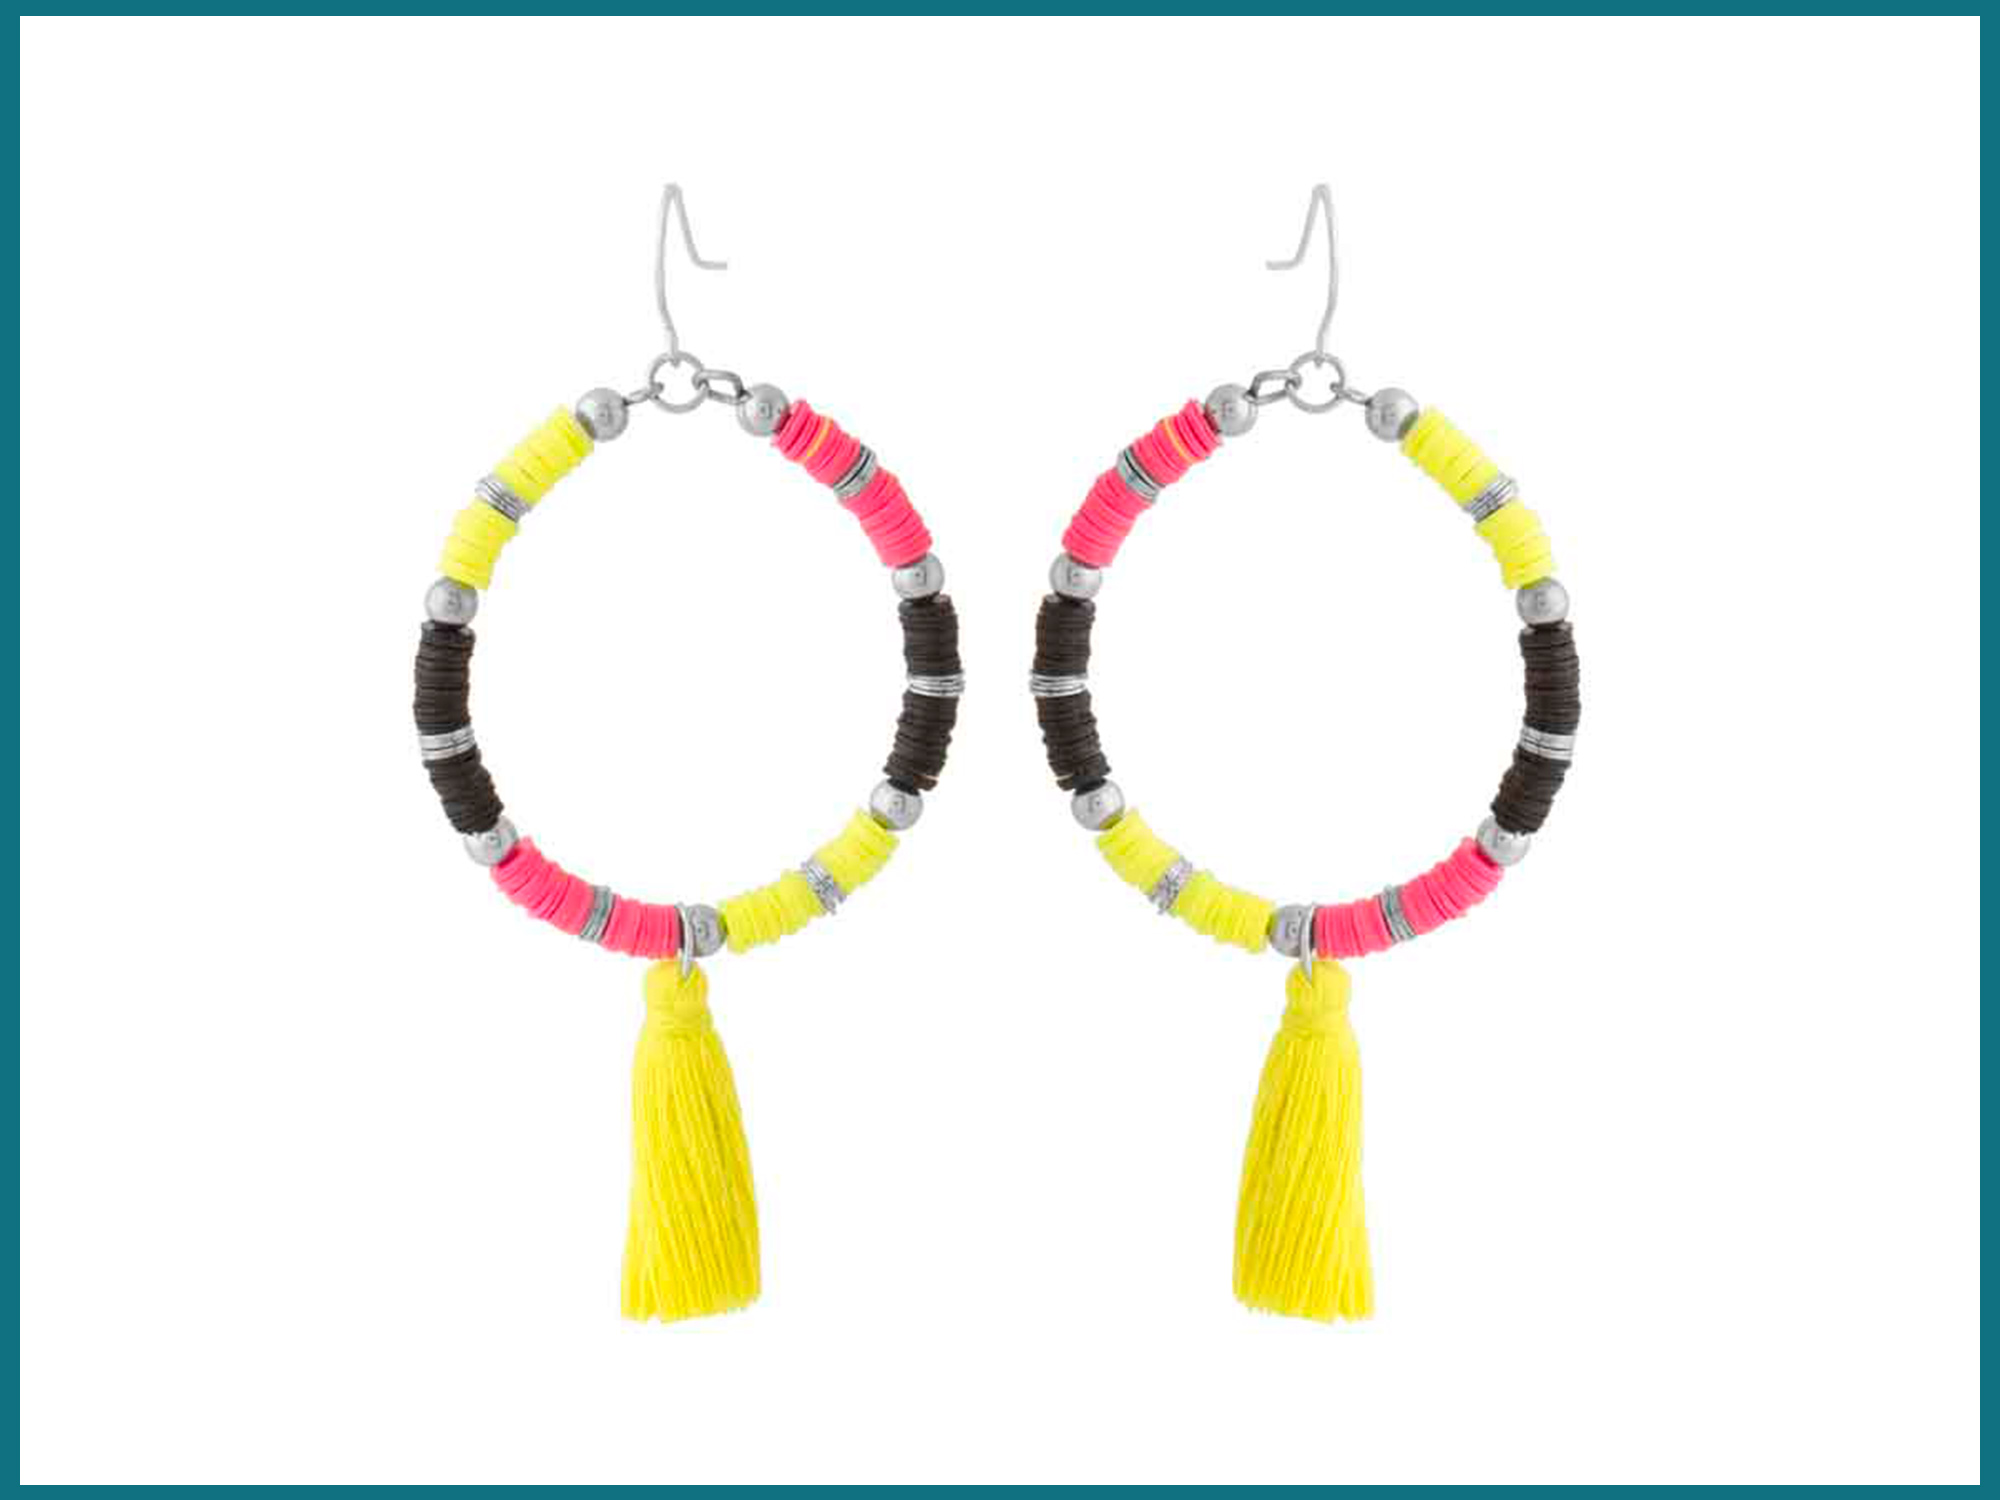 Neon Beads & Tassels Dangled Earrings For Women